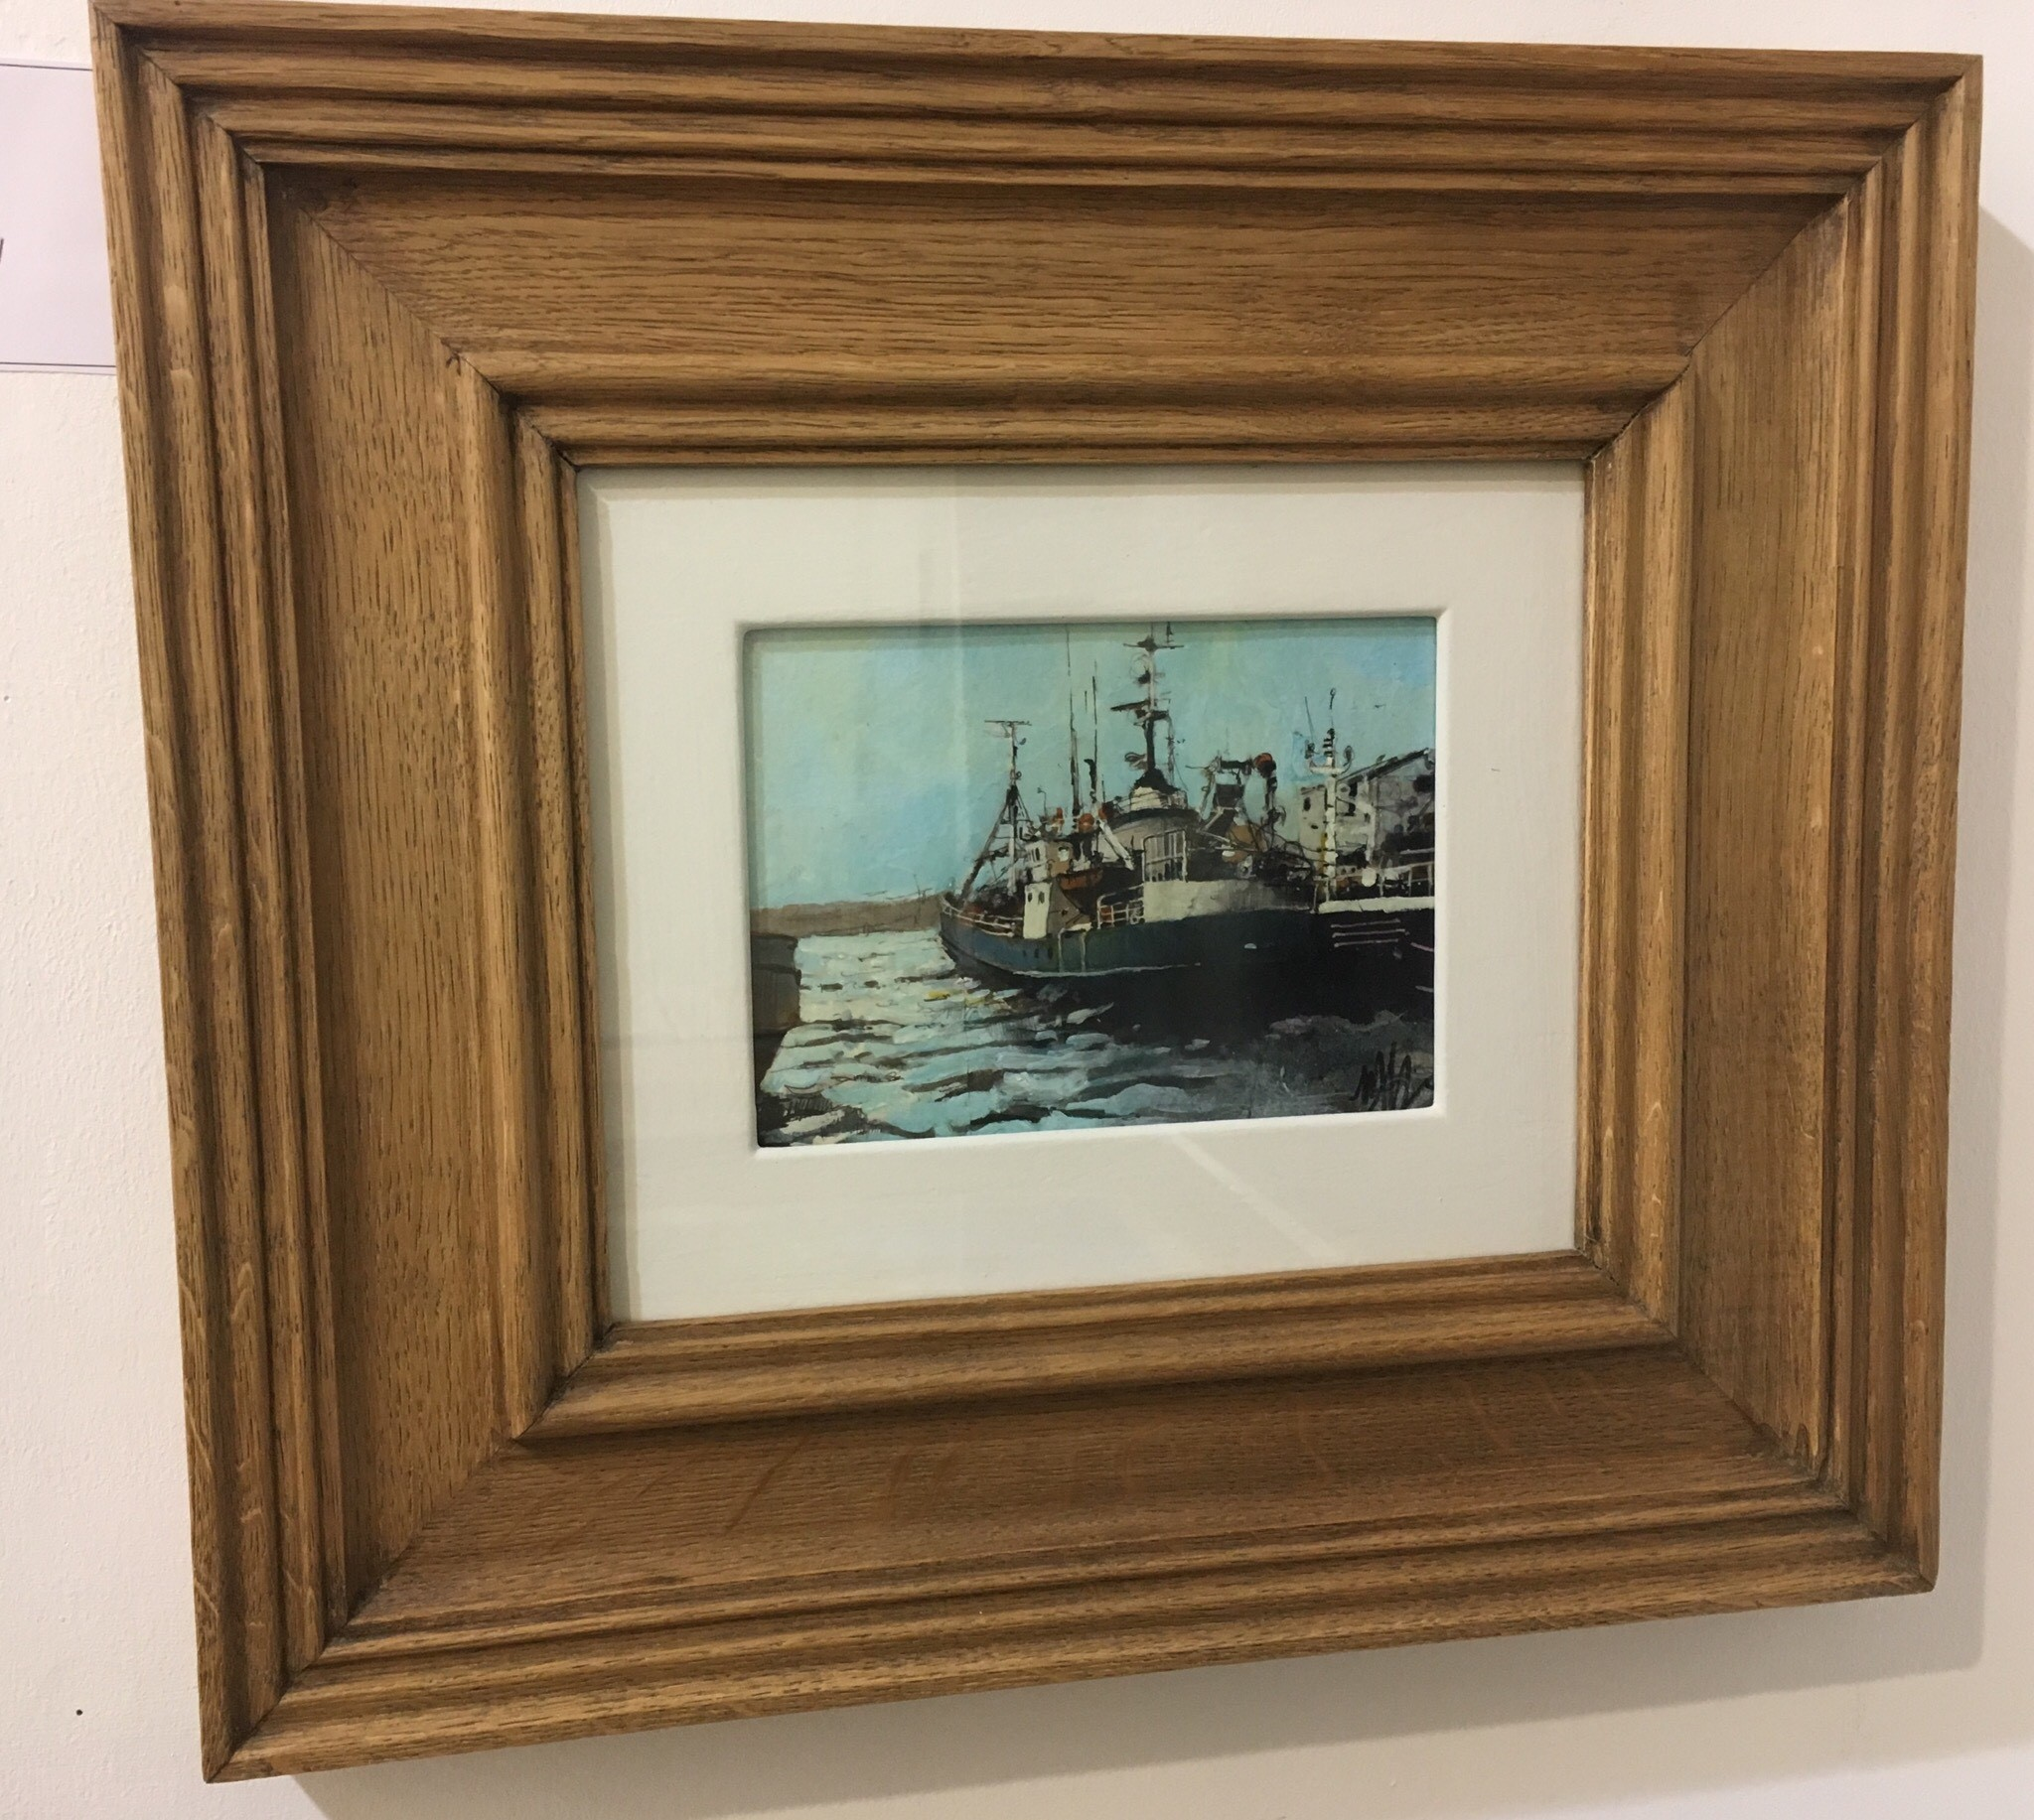 'Ullapool Fishing Boat' by artist Malcolm Cheape